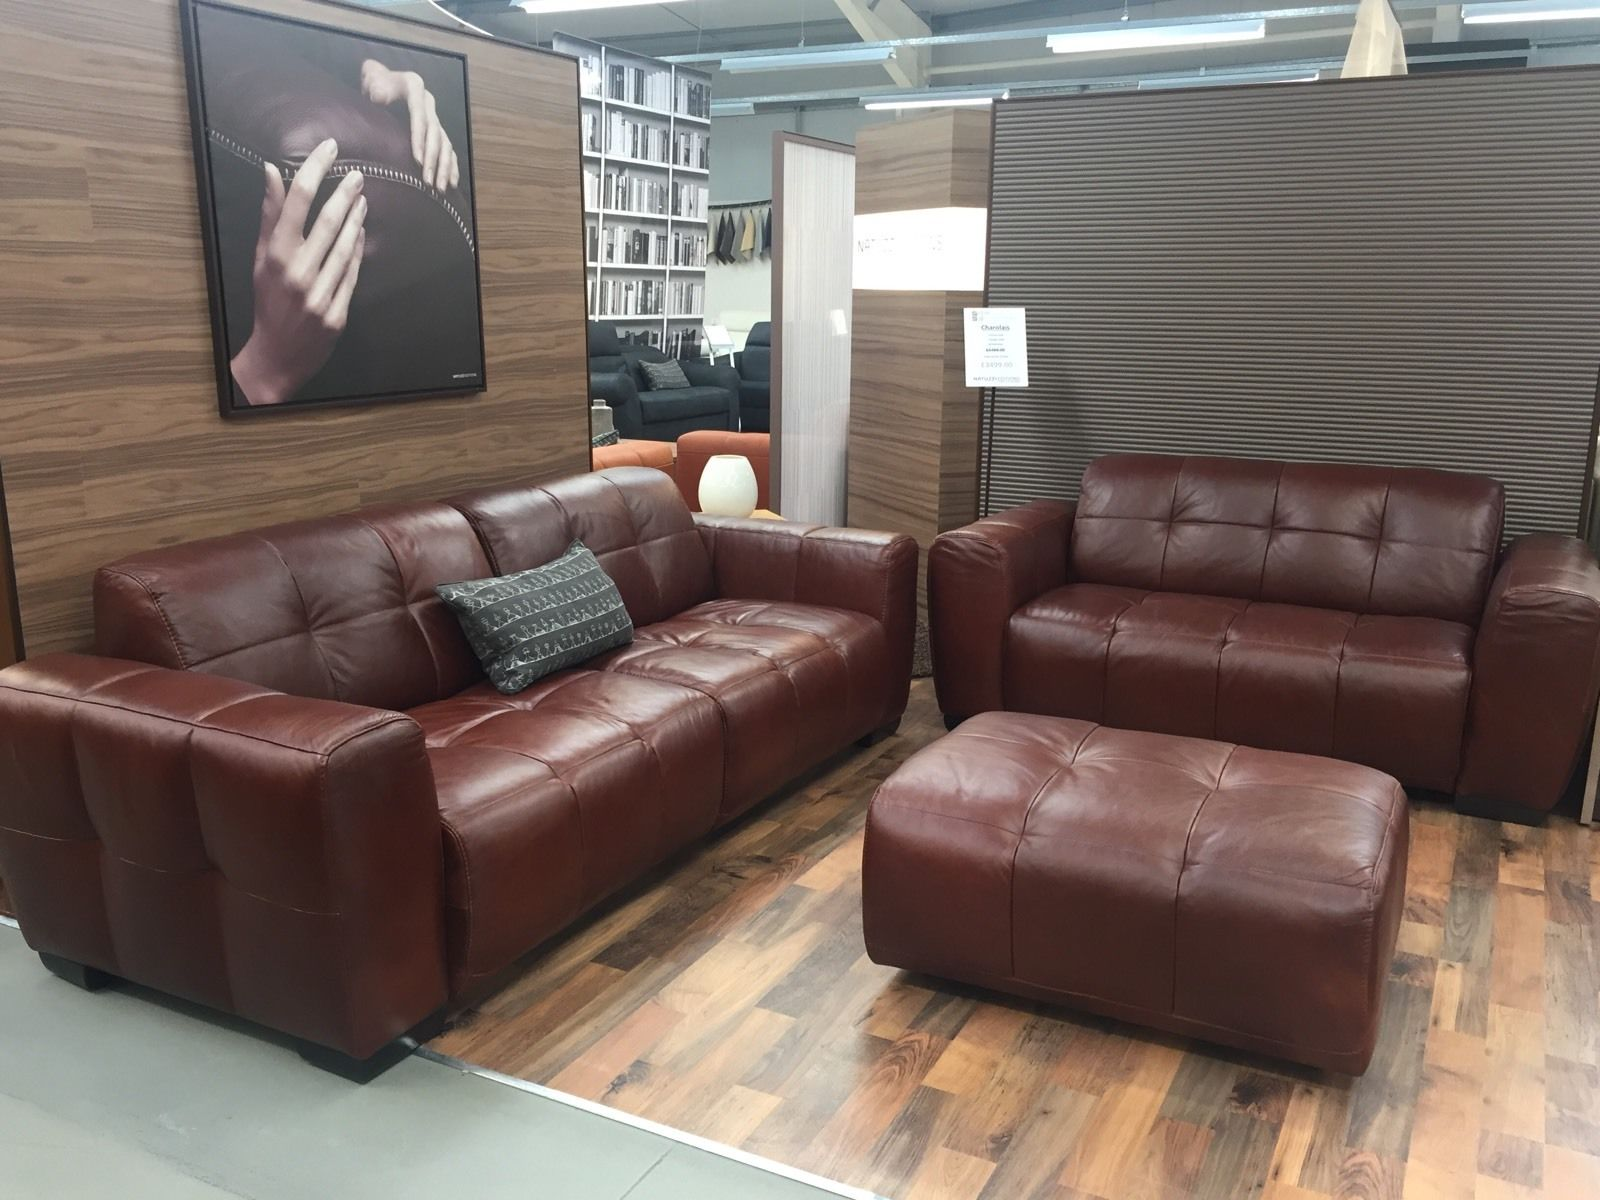 natuzzi editions b952 charolais 3 2 stool seater furnimax brands outlet. Black Bedroom Furniture Sets. Home Design Ideas